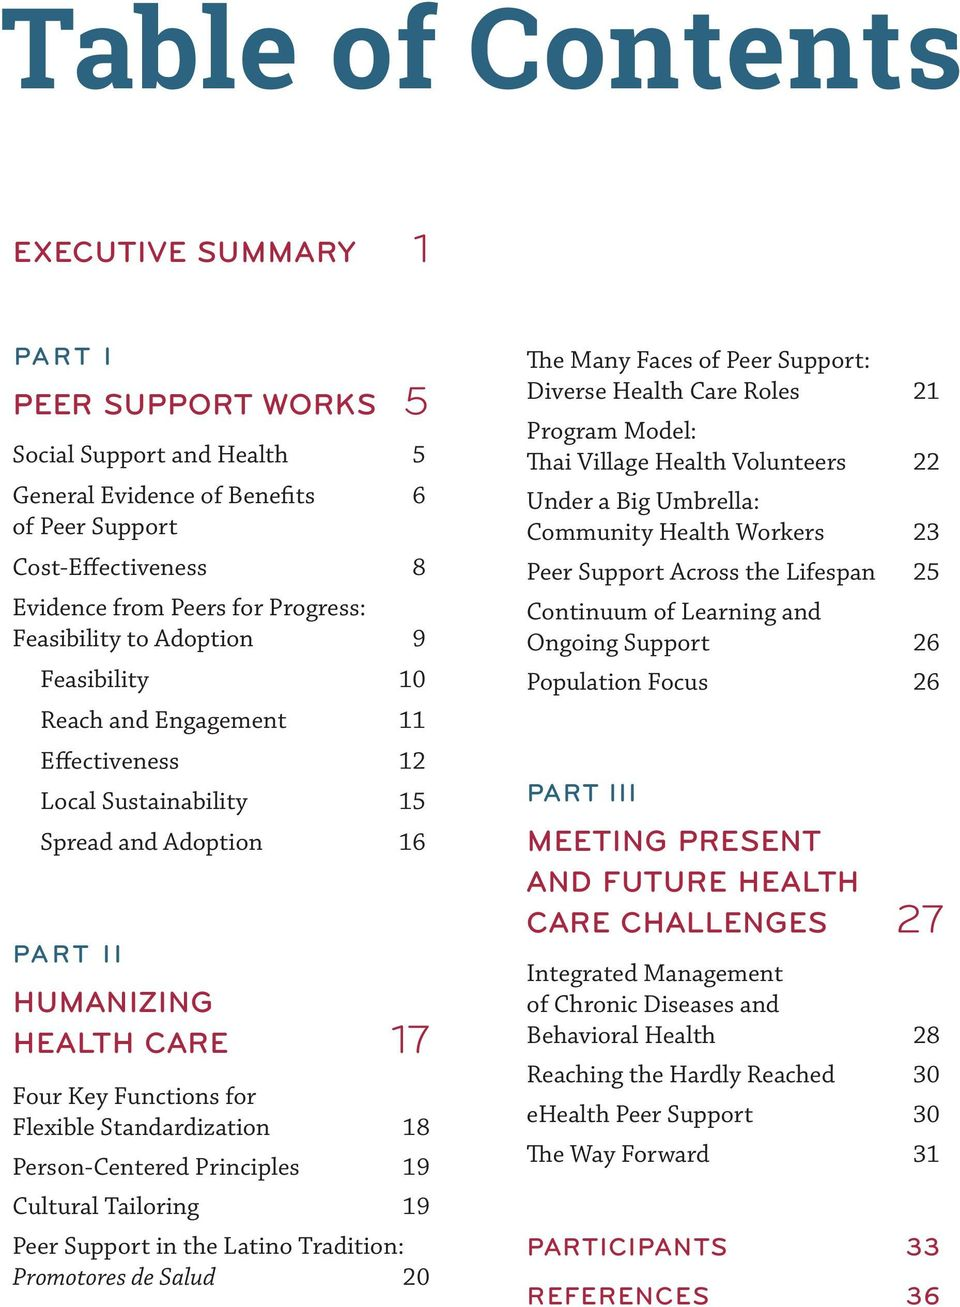 Standardization 18 Person-Centered Principles 19 Cultural Tailoring 19 Peer Support in the Latino Tradition: Promotores de Salud 20 The Many Faces of Peer Support: Diverse Health Care Roles 21